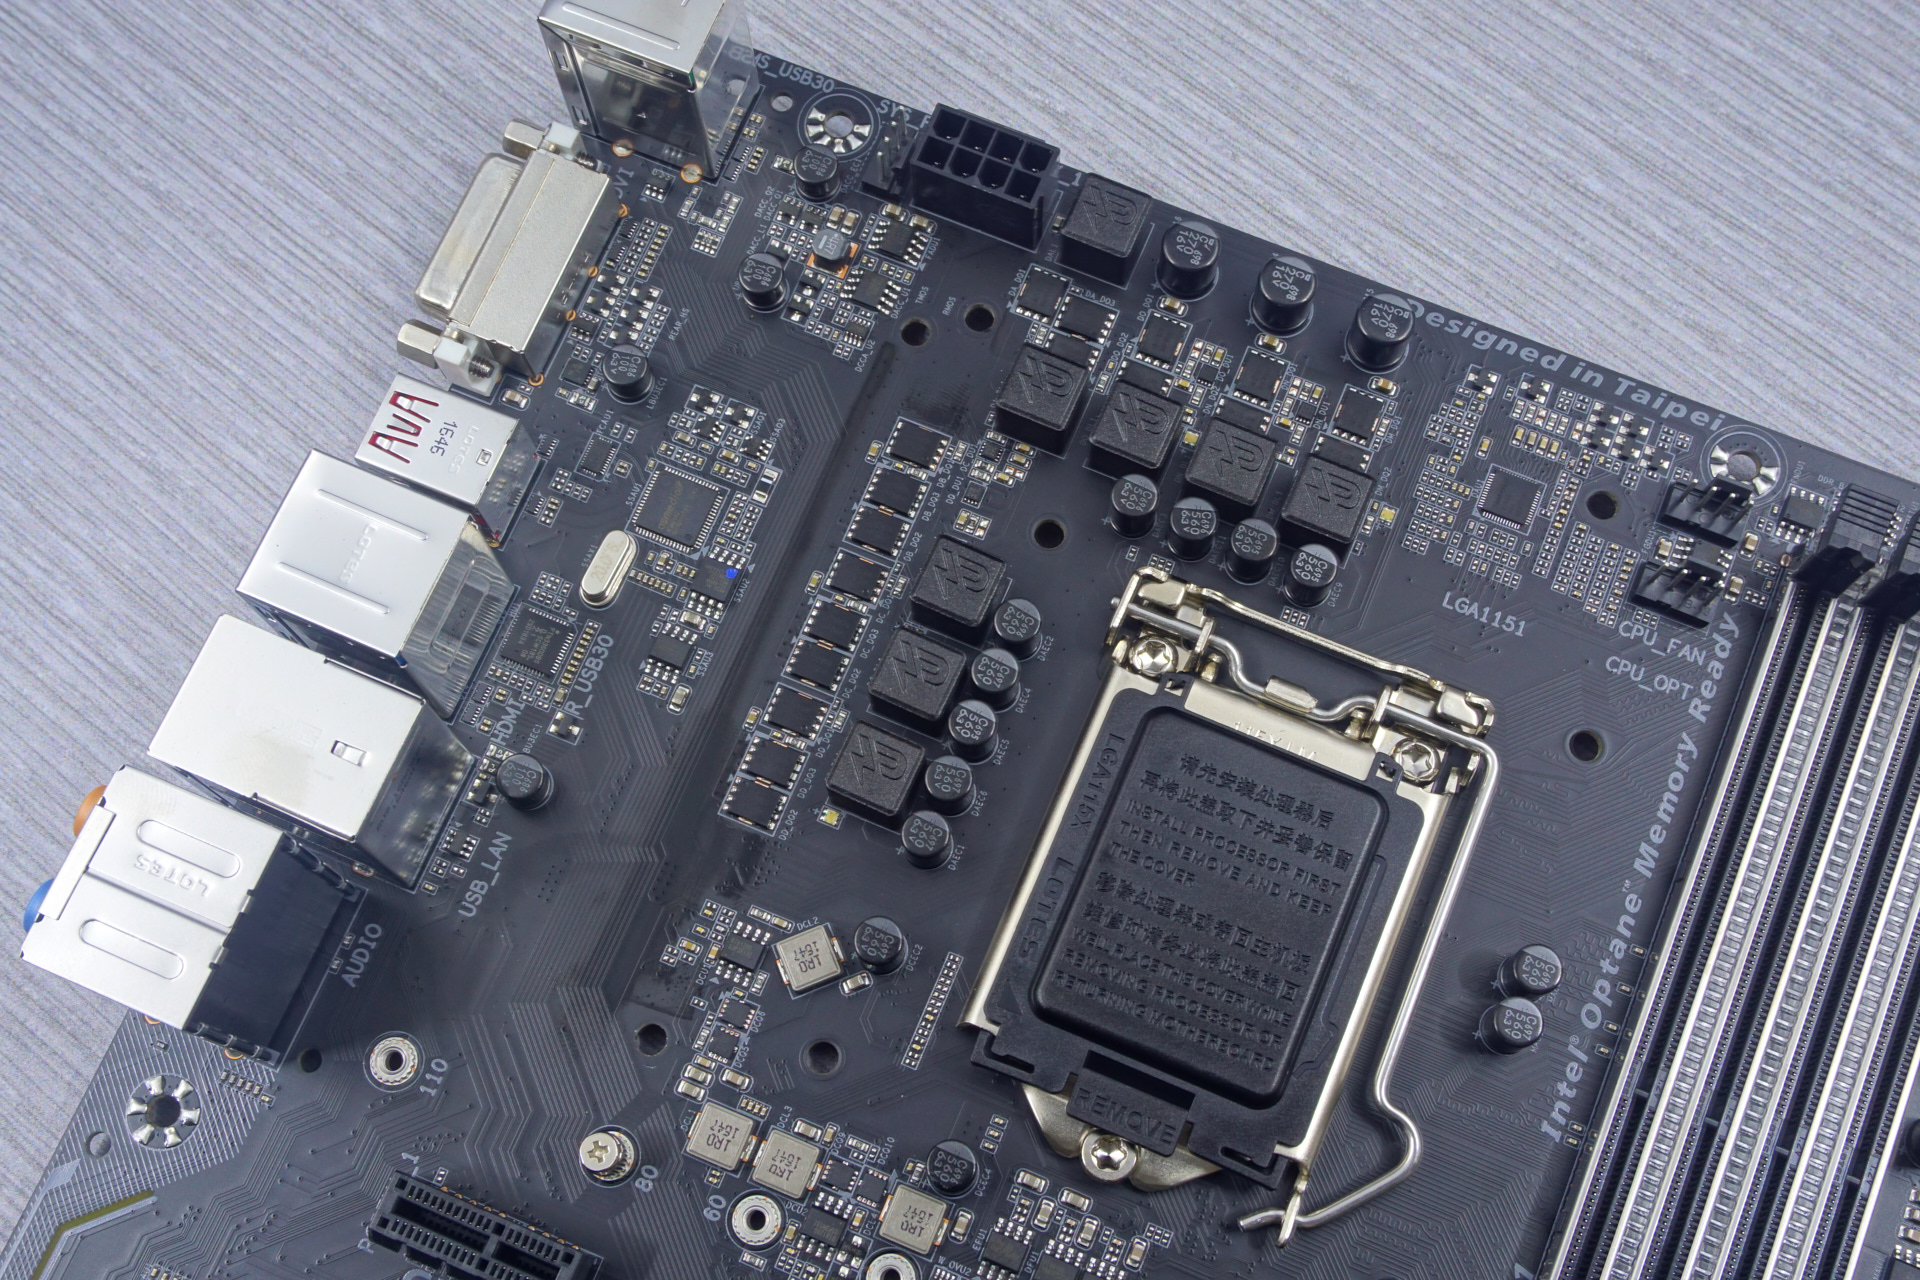 Gigabyte Z270x Ultra Gaming Board Features Visual